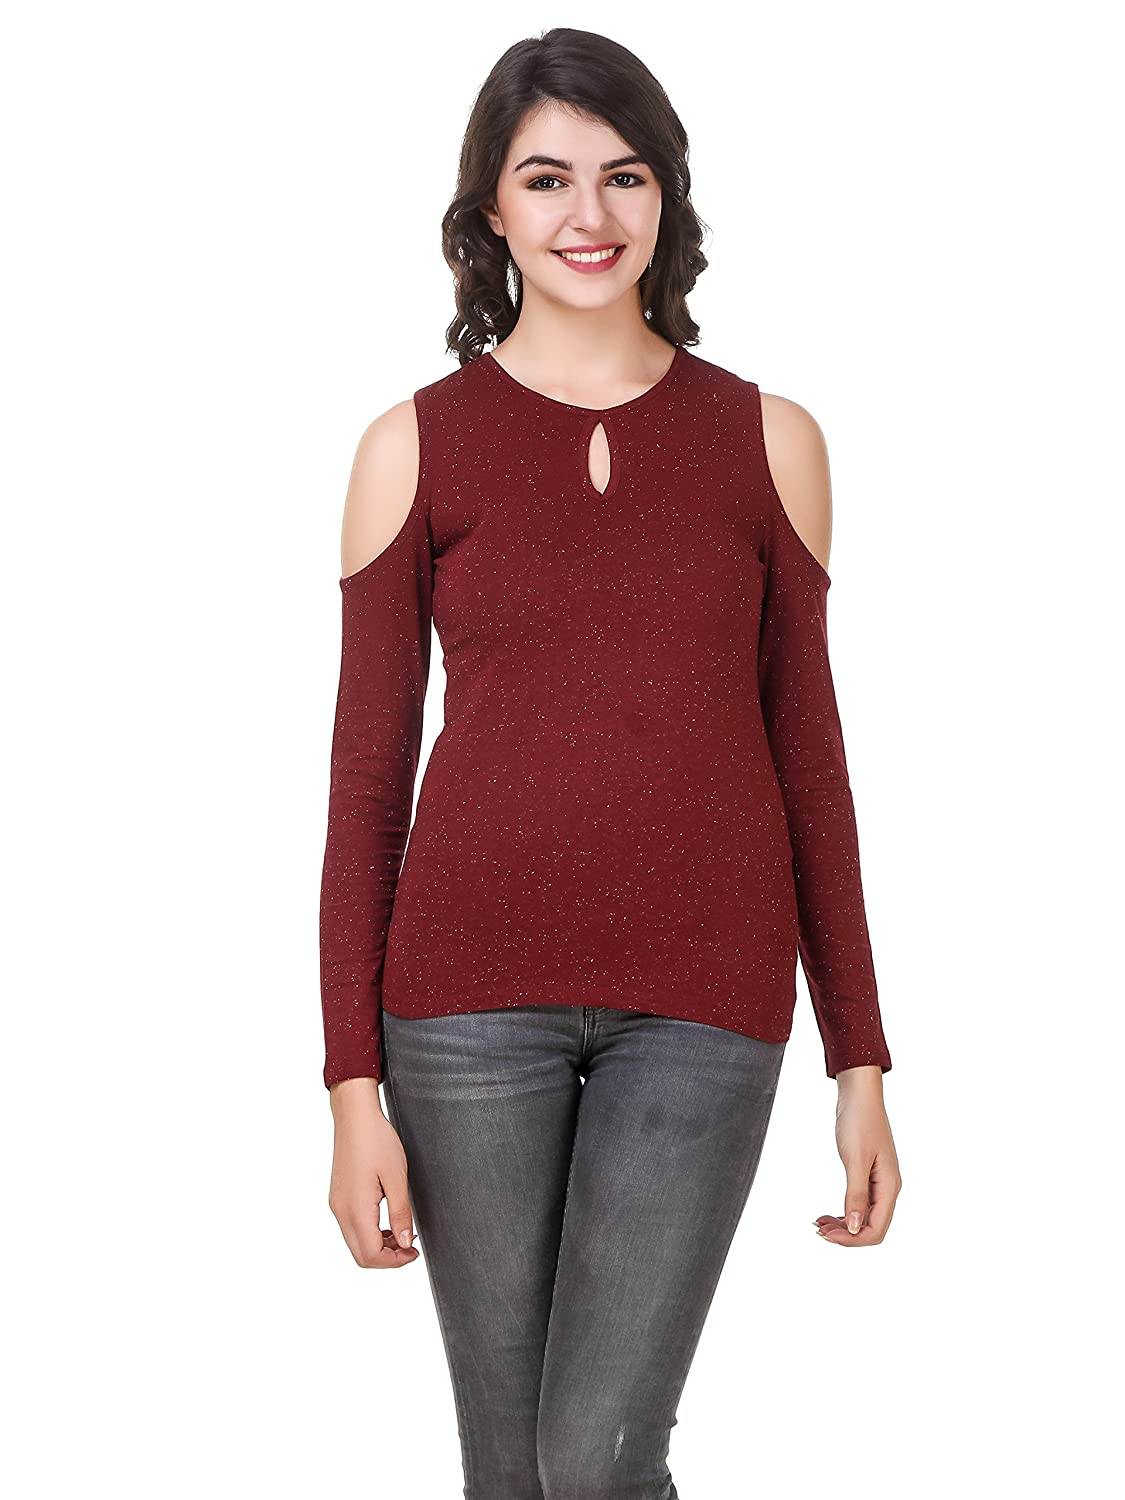 200754aaa0e53 LE BOURGEOIS Women s Cold Shoulder Full Sleeve Knitted Top  Amazon.in   Clothing   Accessories